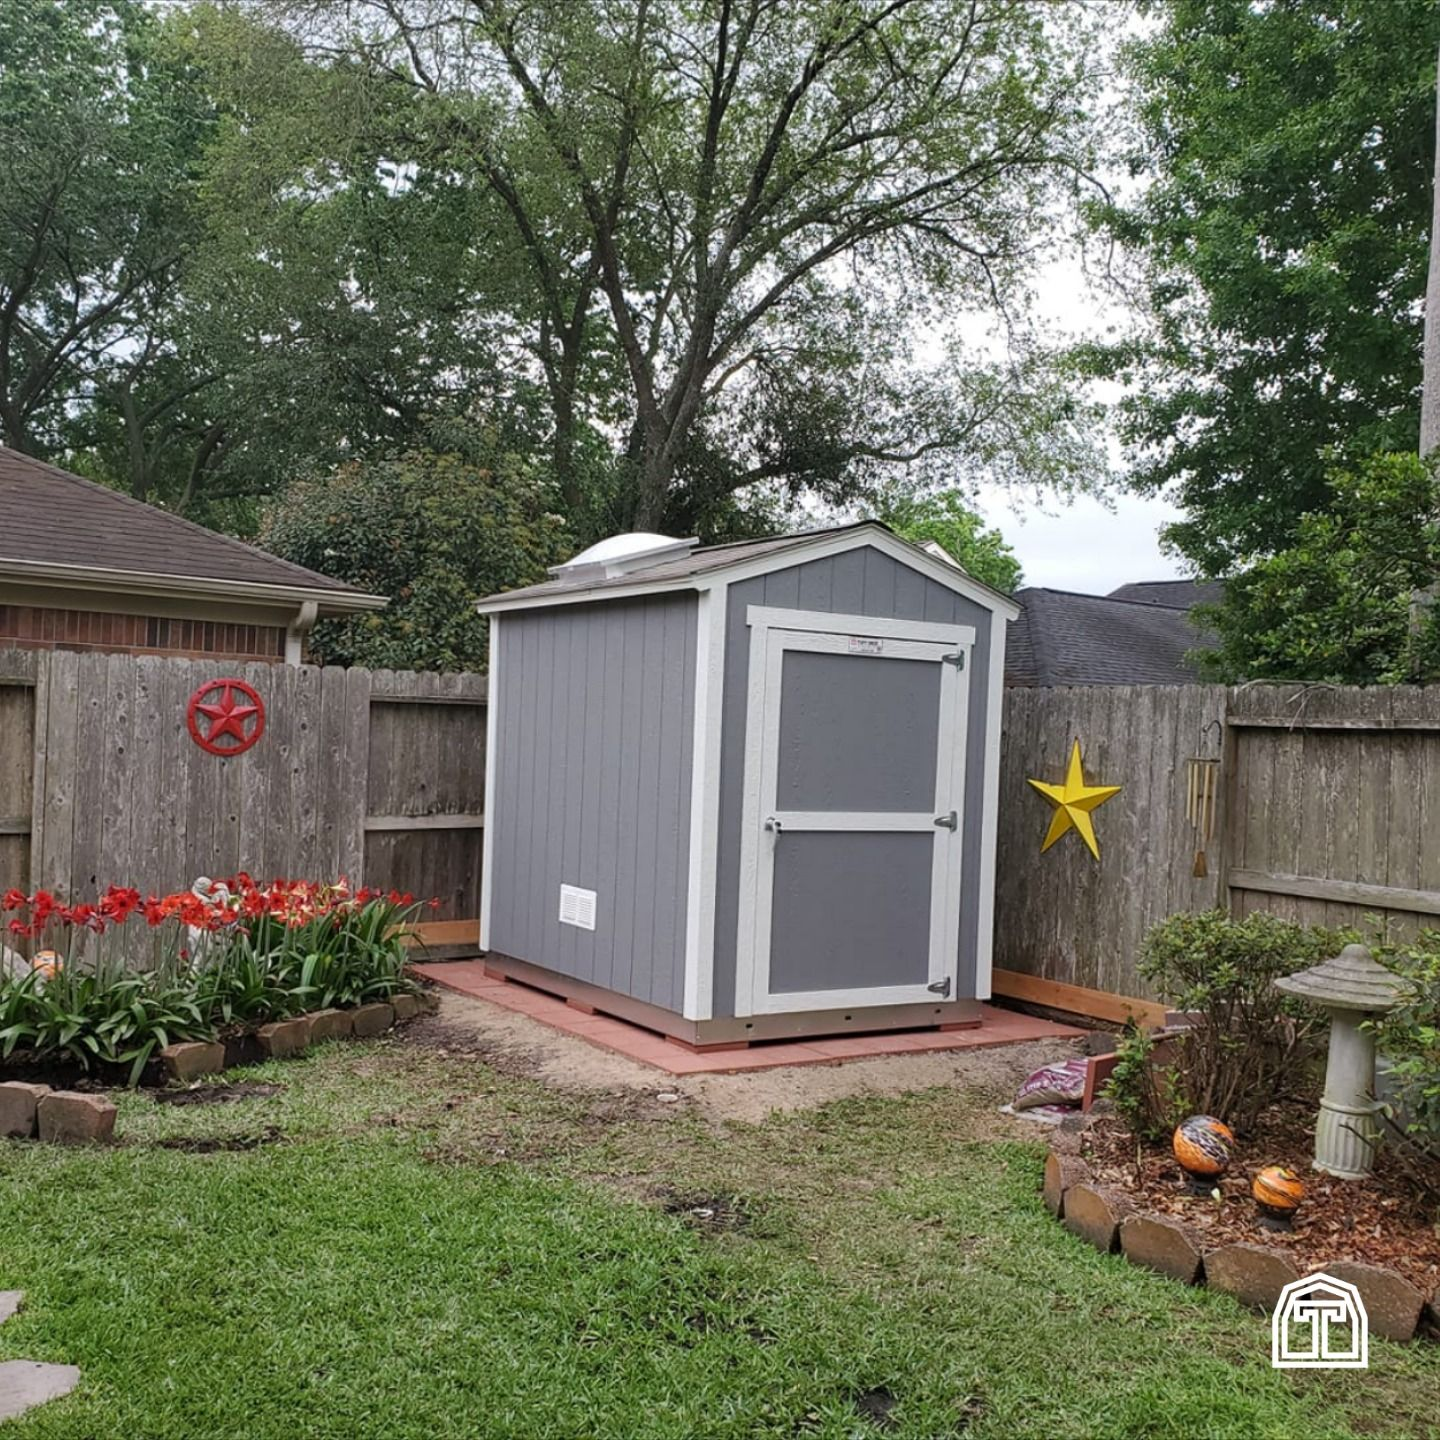 Is Your Backyard Ready For Spring With A New Garden Shed You Can